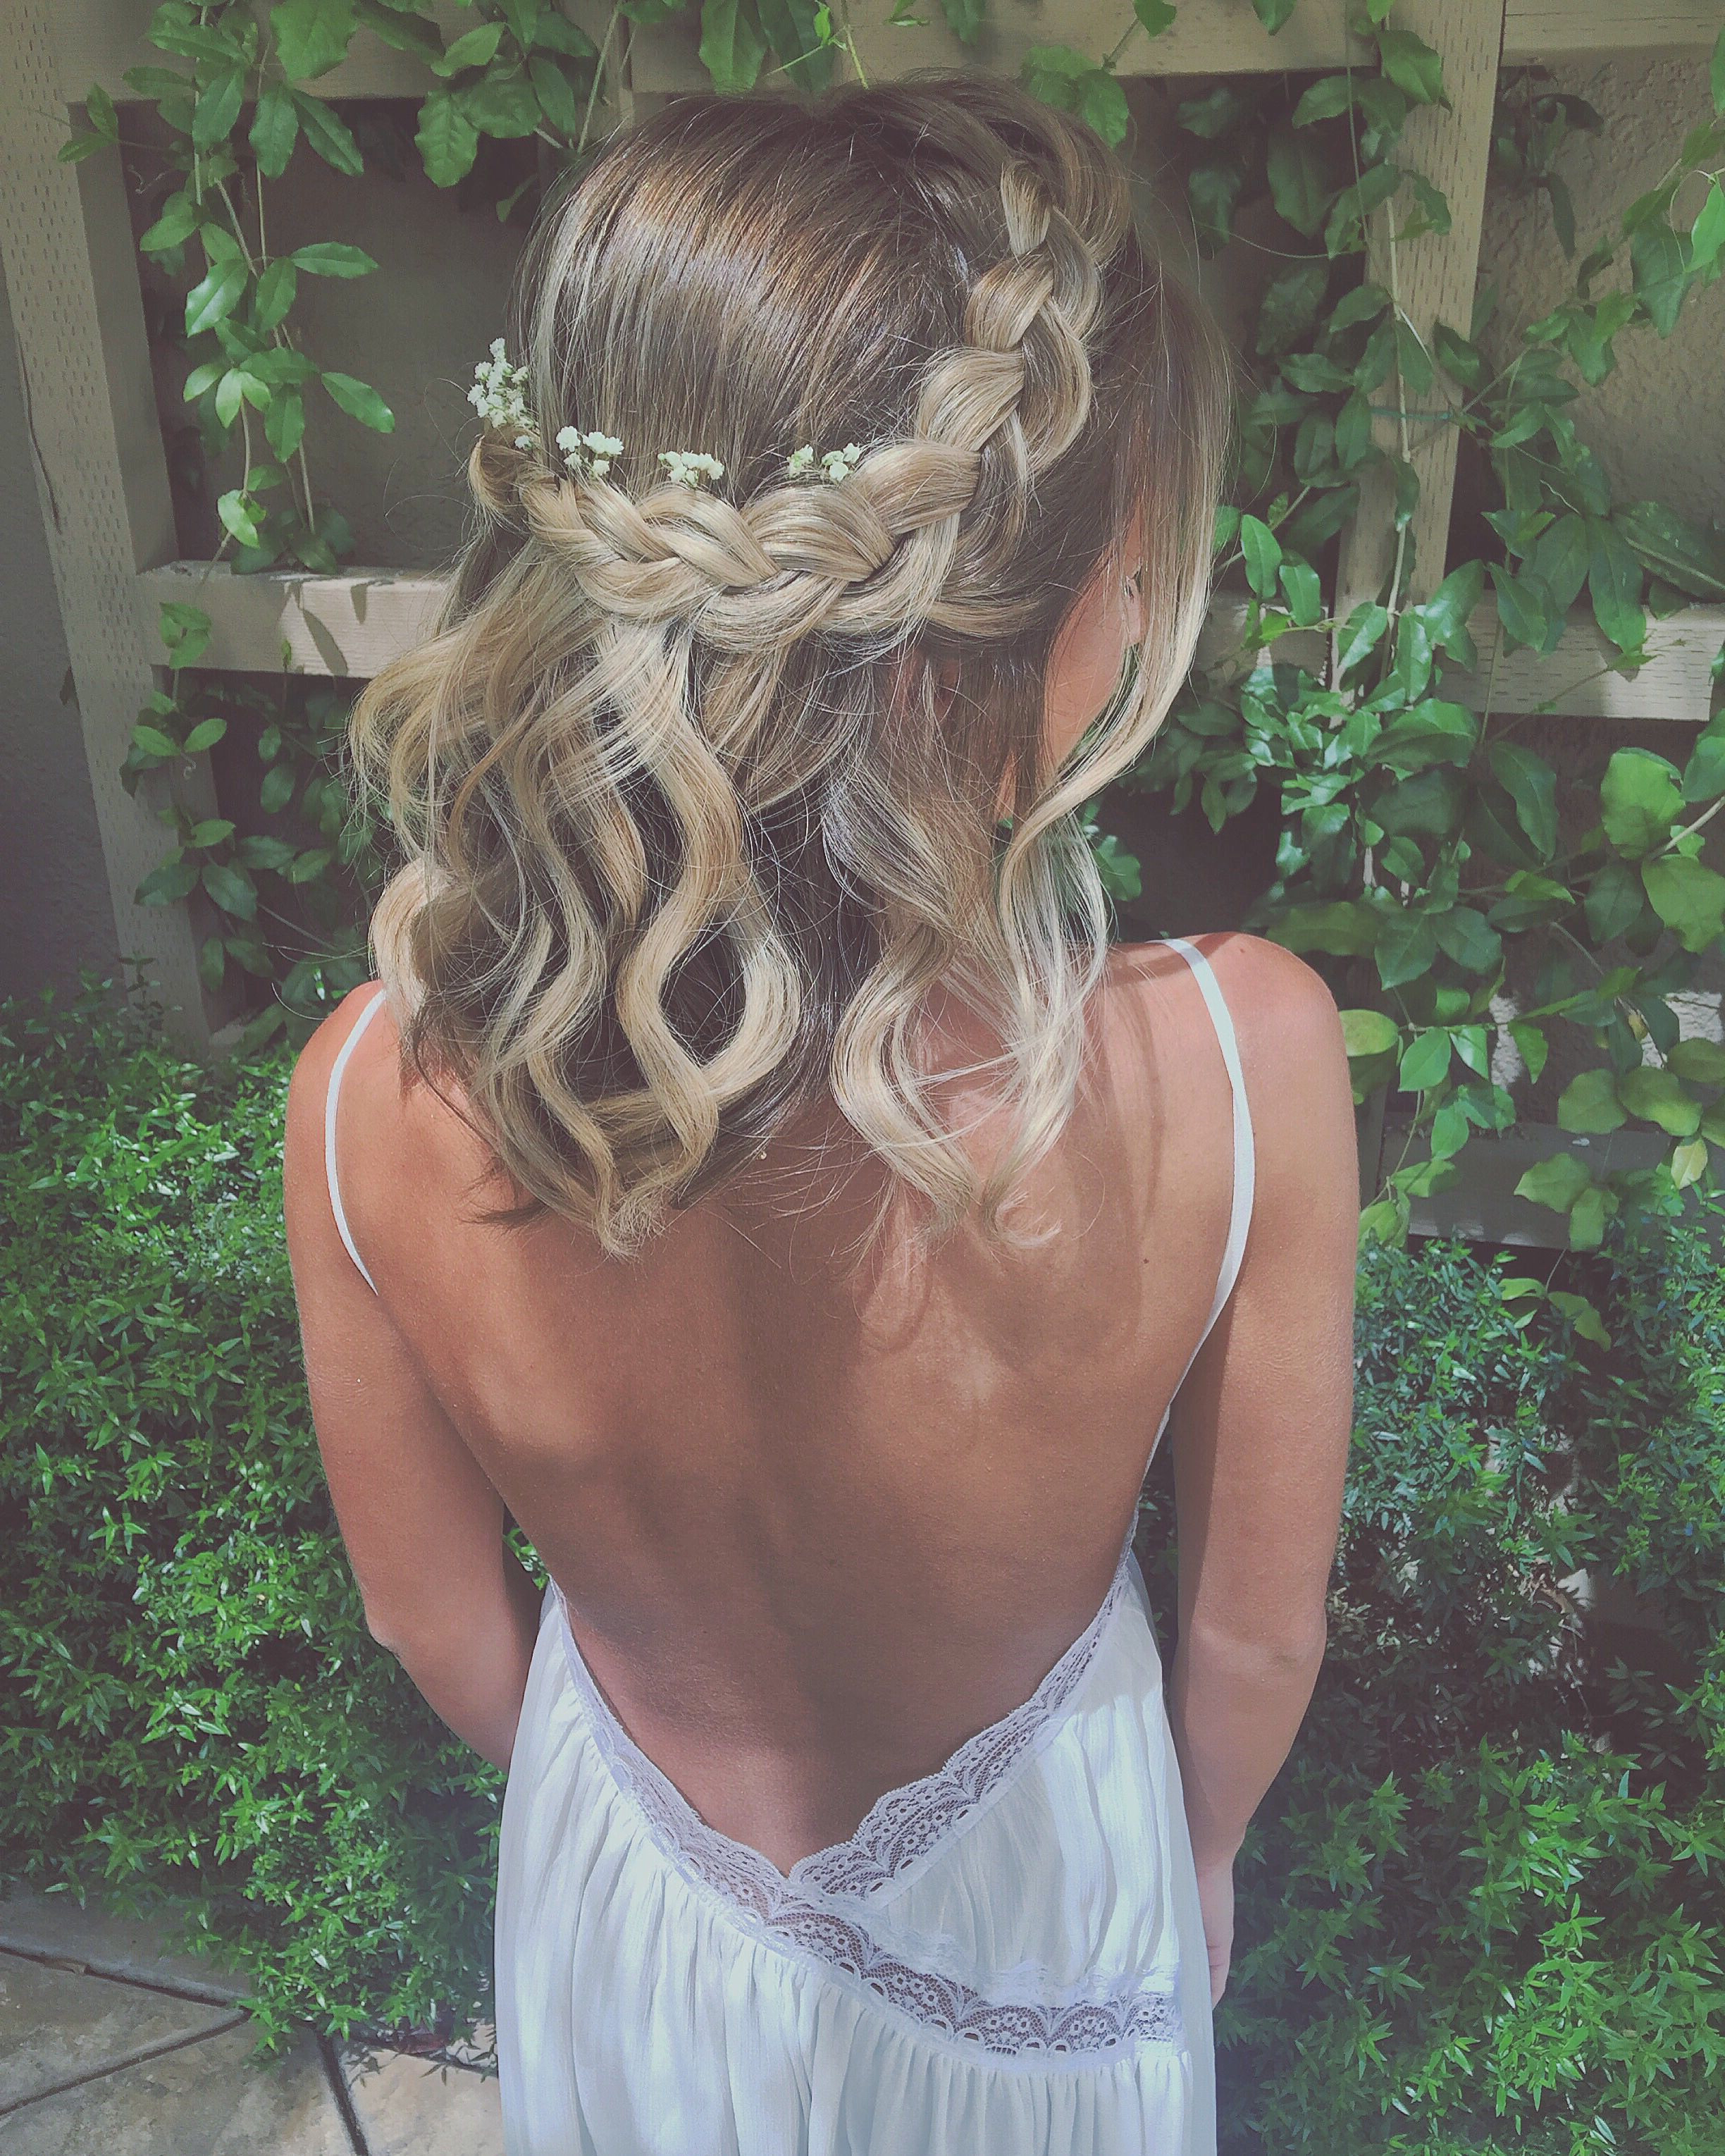 Homecoming Updo Hairstyles For Short Hair Collection Awesome 45 In Homecoming Short Hair Styles (View 23 of 25)